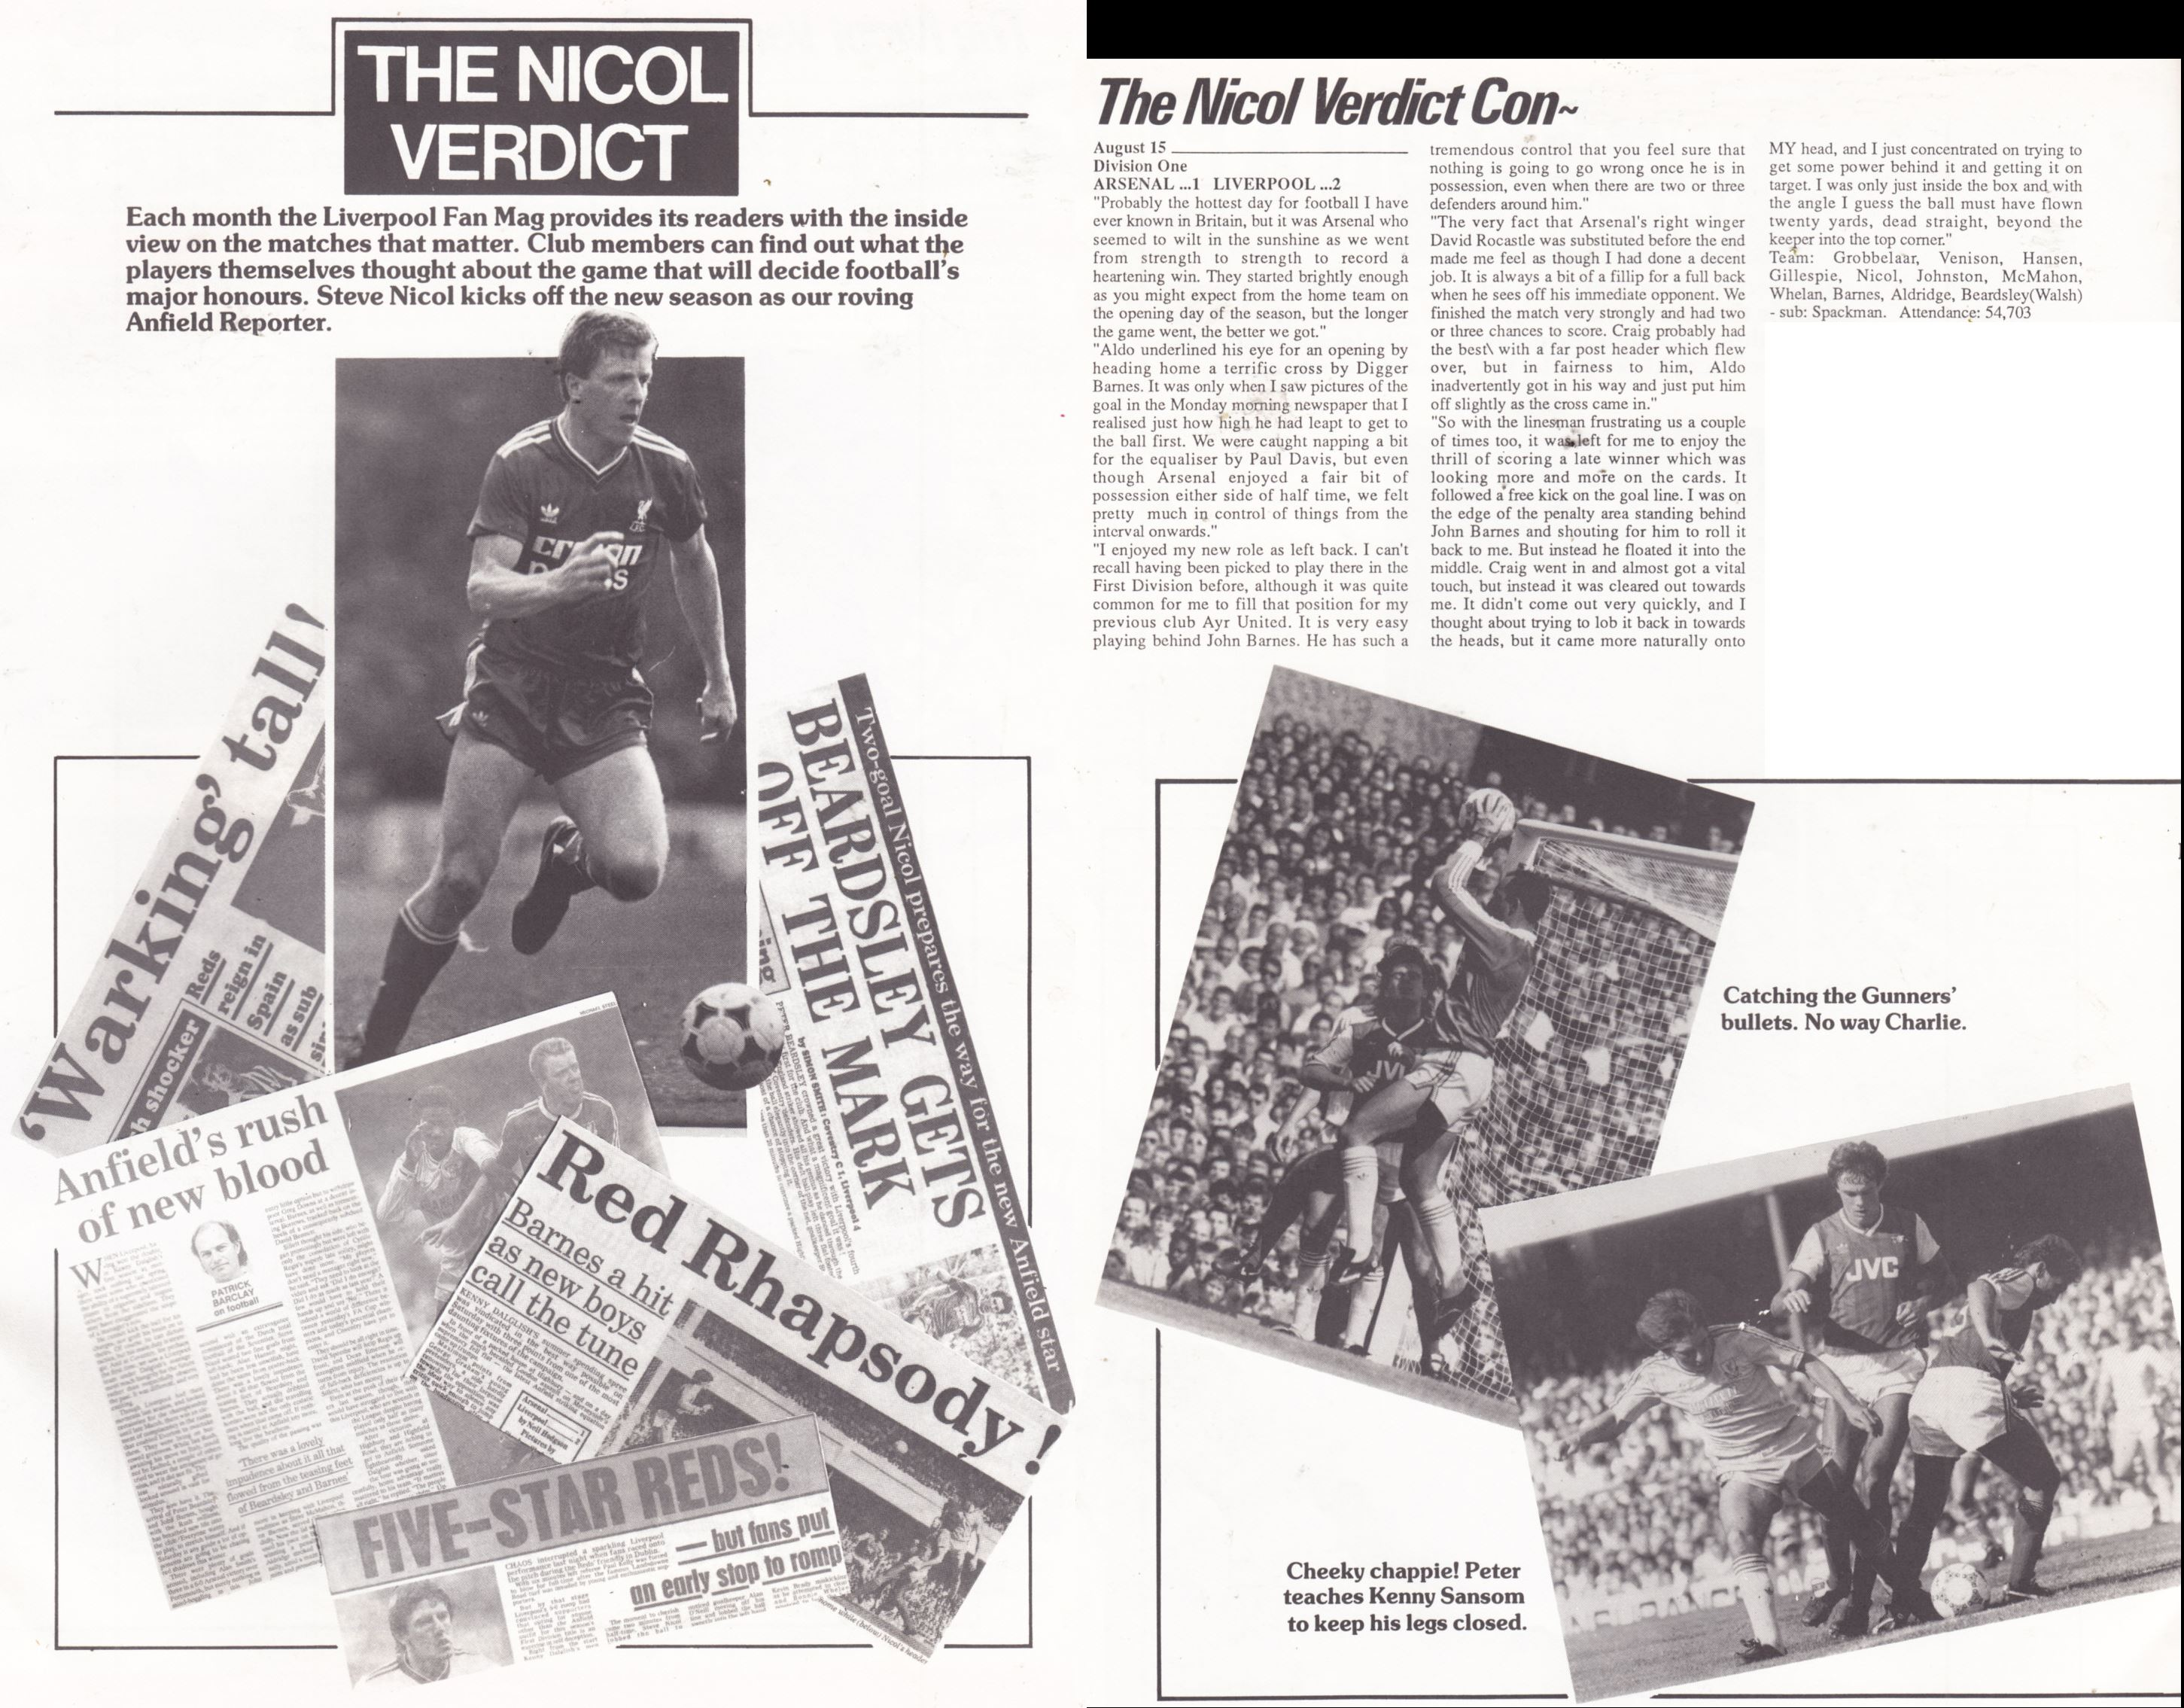 Nicol's verdict in the Liverpool fan club magazine on Arsenal - Liverpool on 15 August 1987